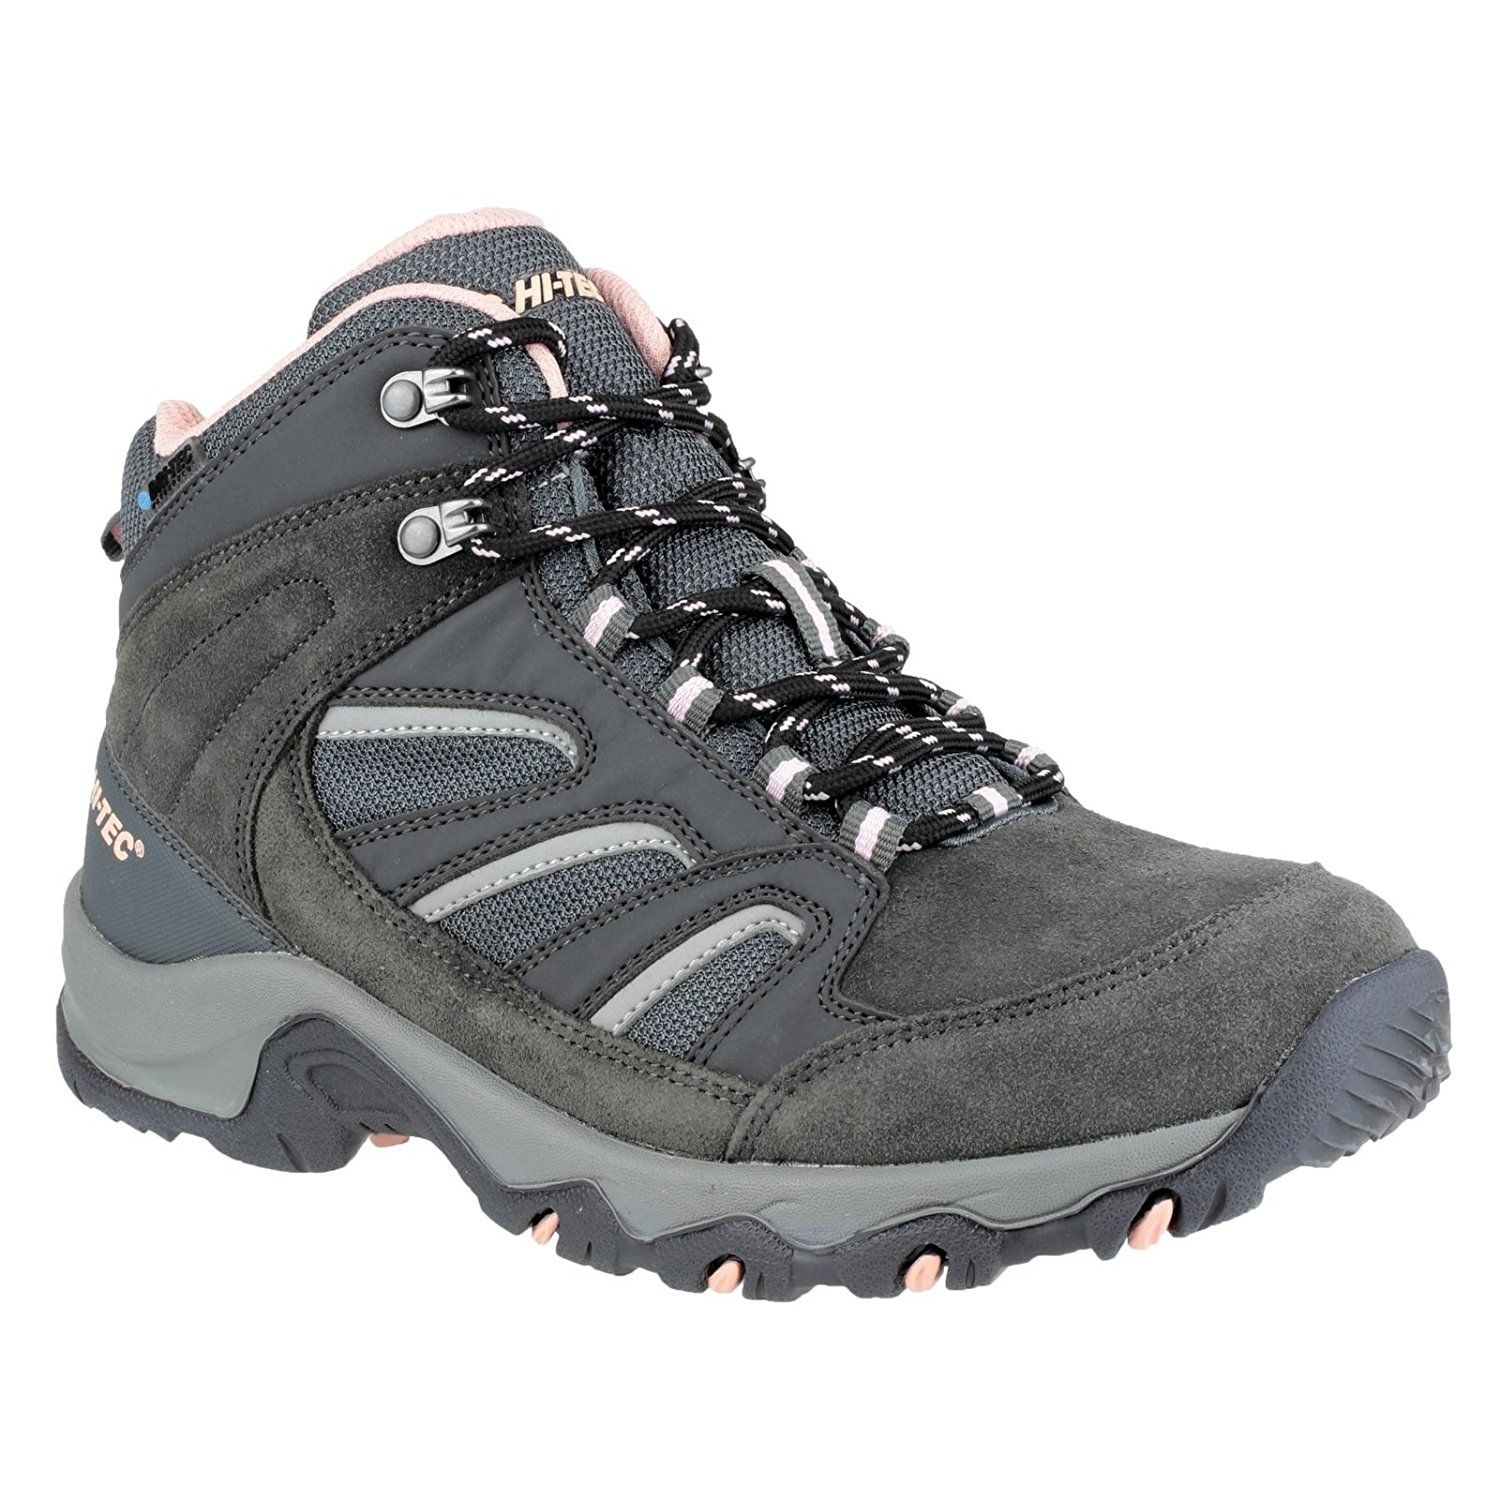 Pin on Women's Hiking Shoes and Boots